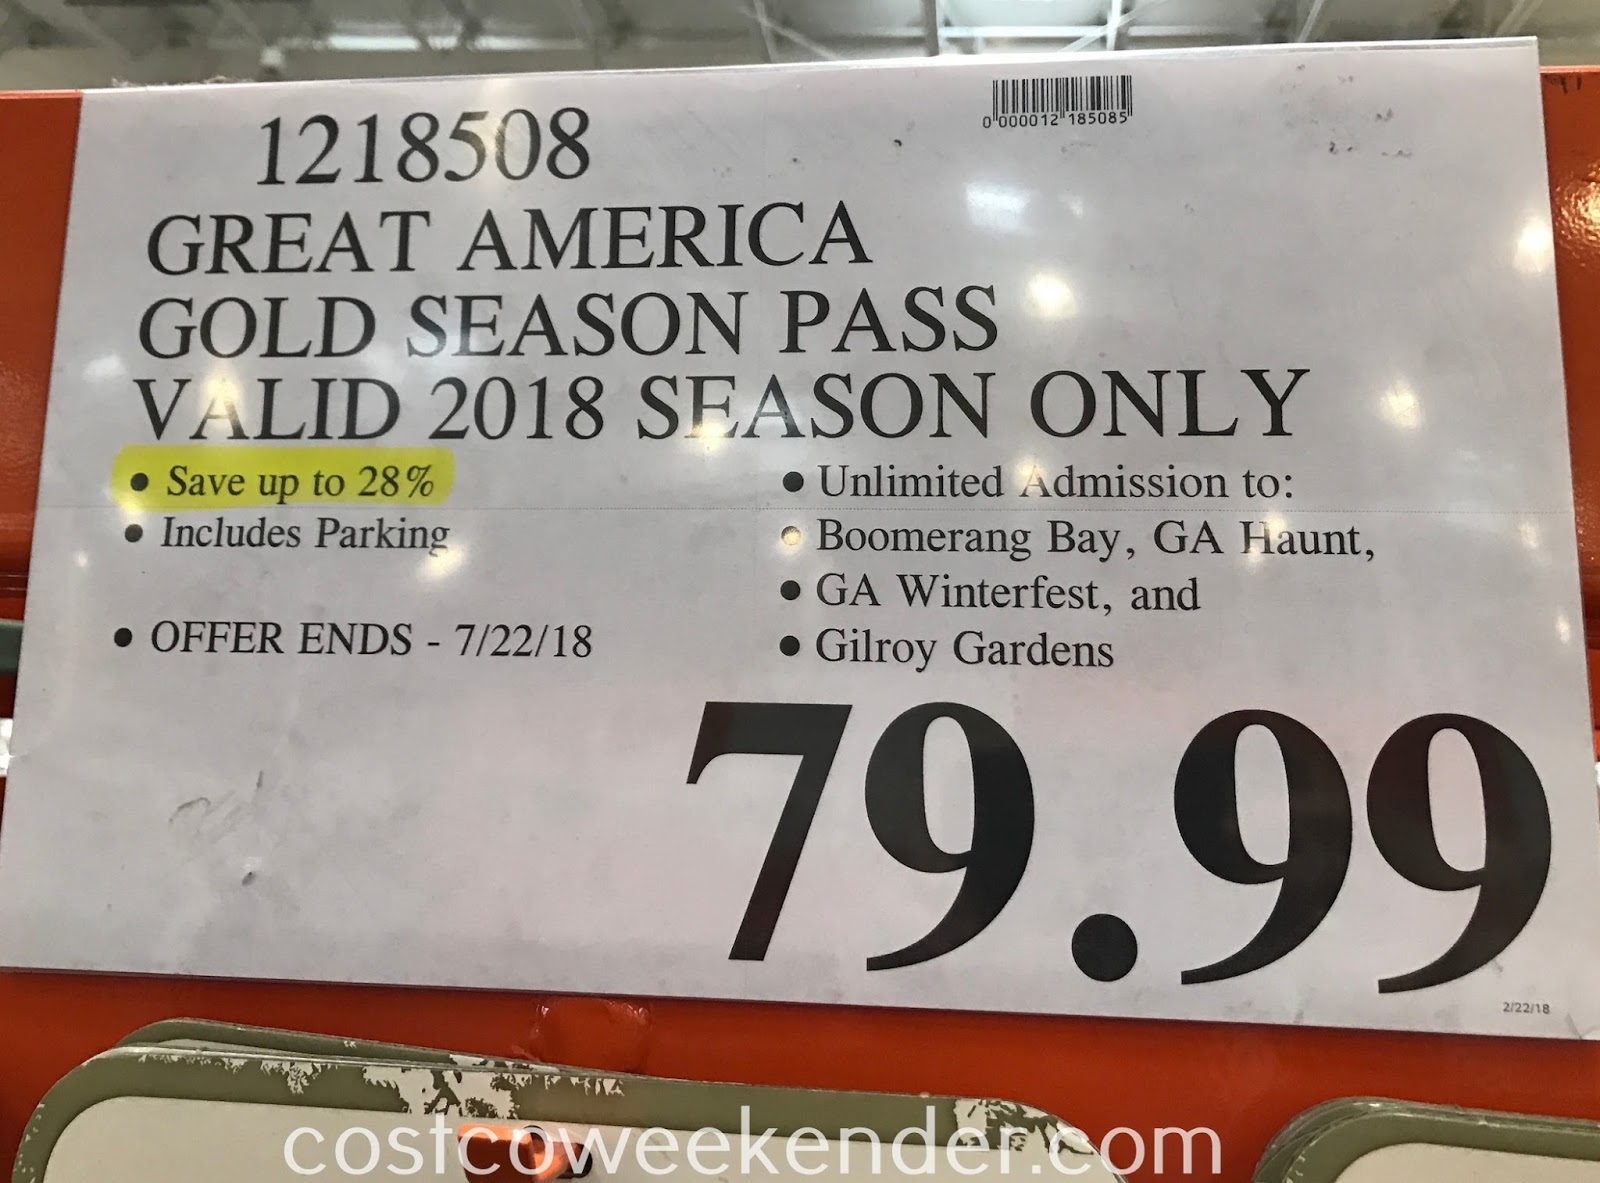 Deal for the 2018 Great America Gold Season Pass at Costco